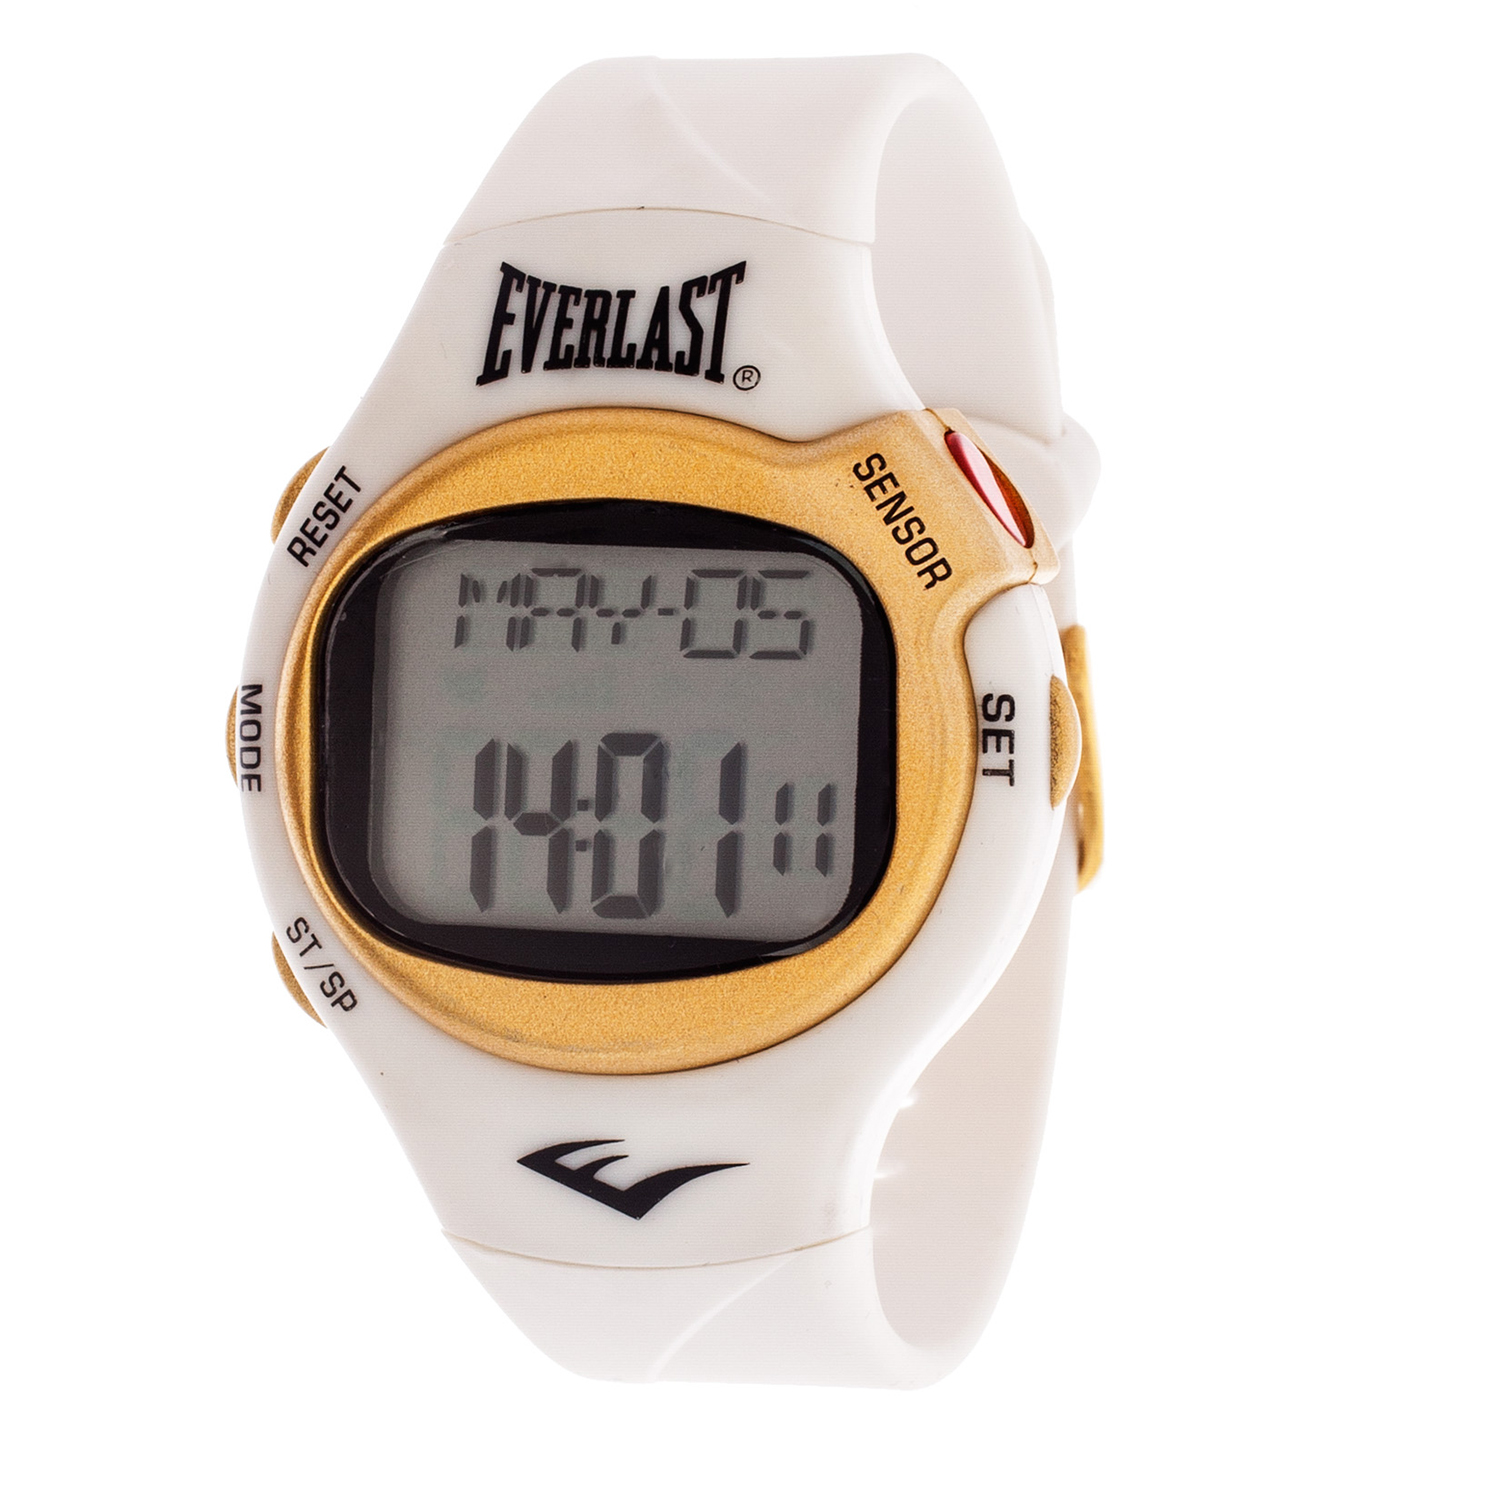 Everlast Hr5 Heart Rate Monitor Amp Activity Fitness Tracker Watch W Touch Sensor